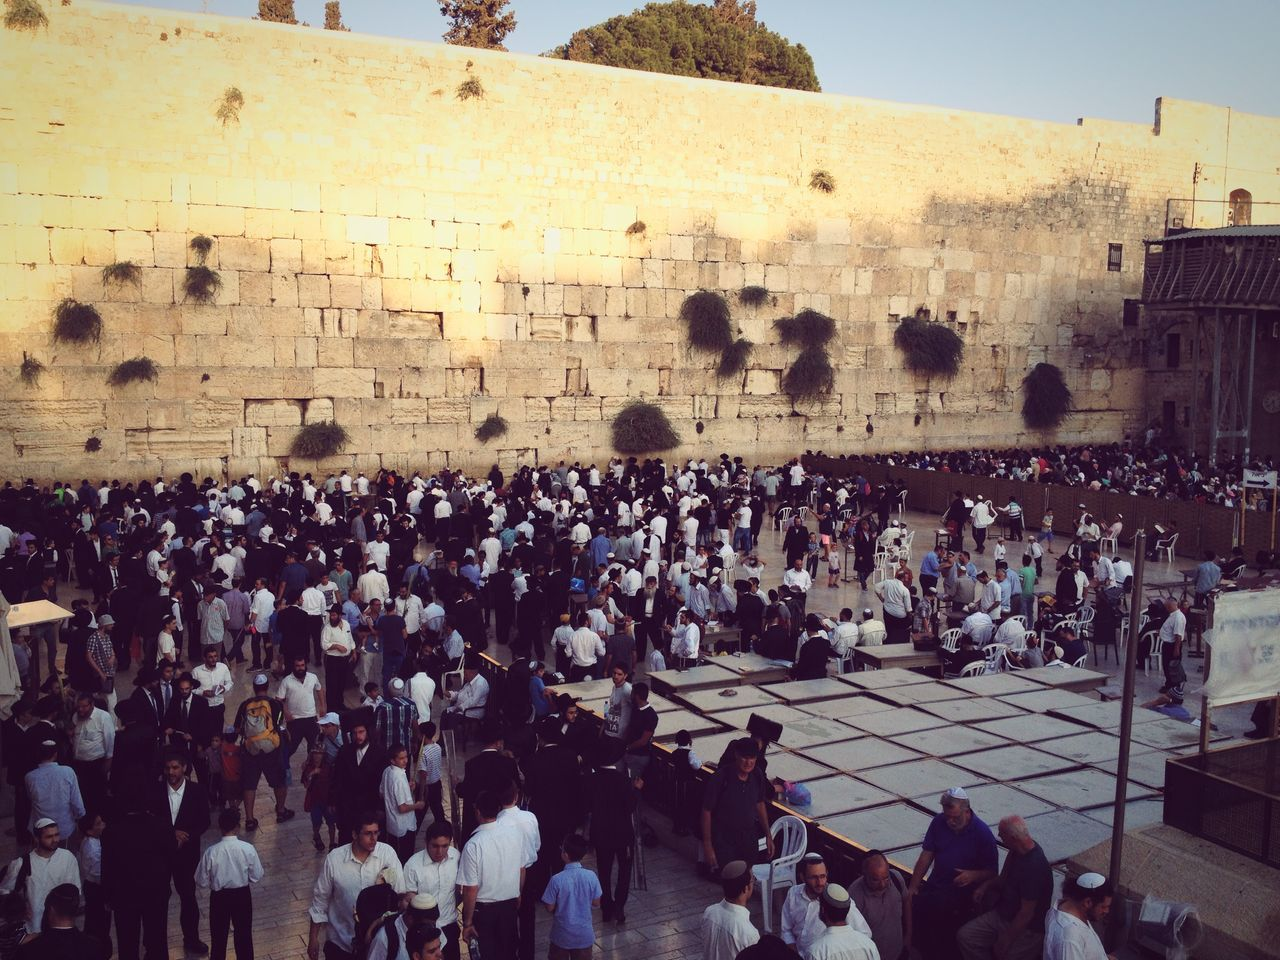 The walling Wall of Jerusalem Contemplation Meditating Praying Soul Searching